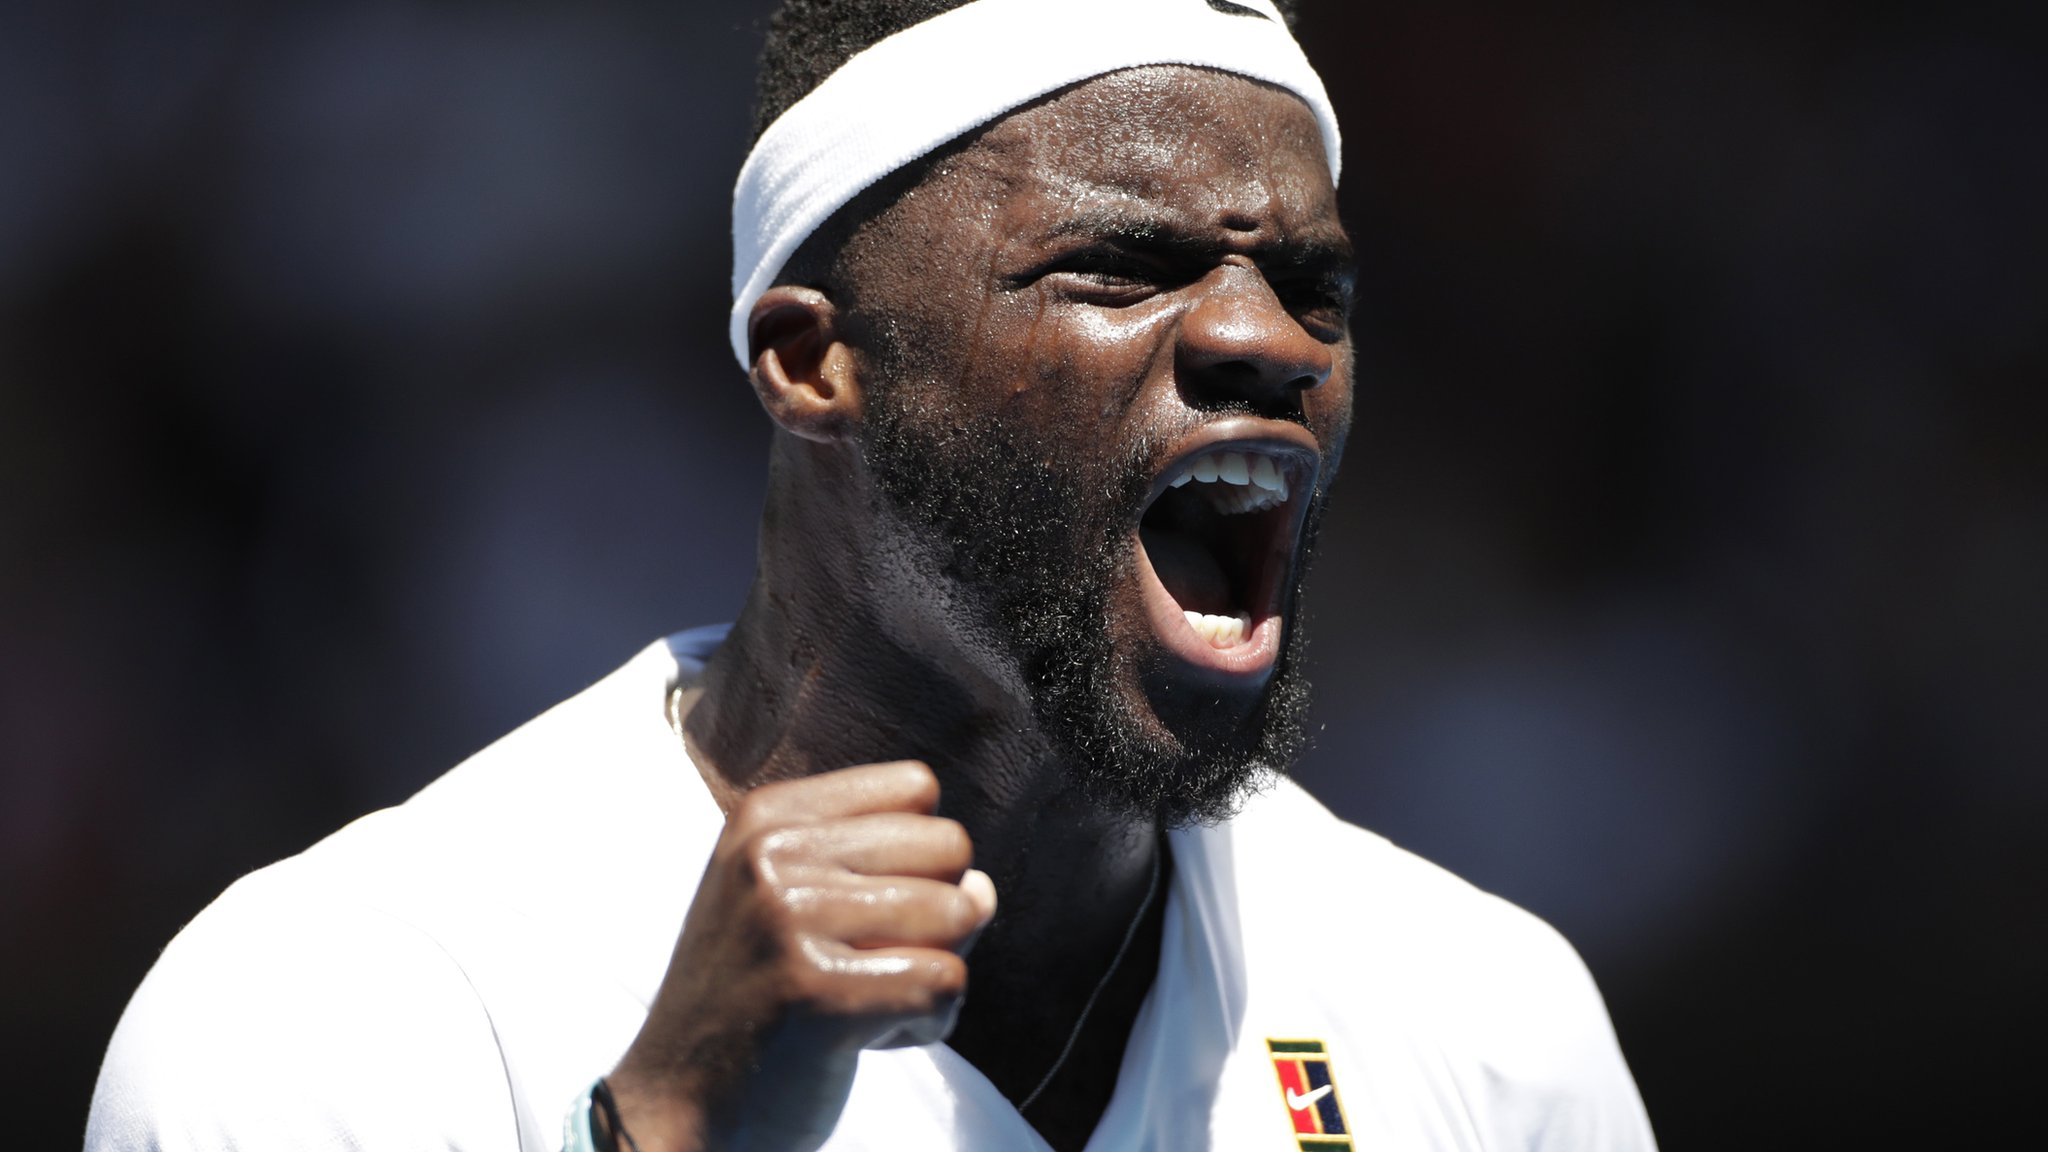 'It means the world ' - Tiafoe into quarter-finals on 21st birthday